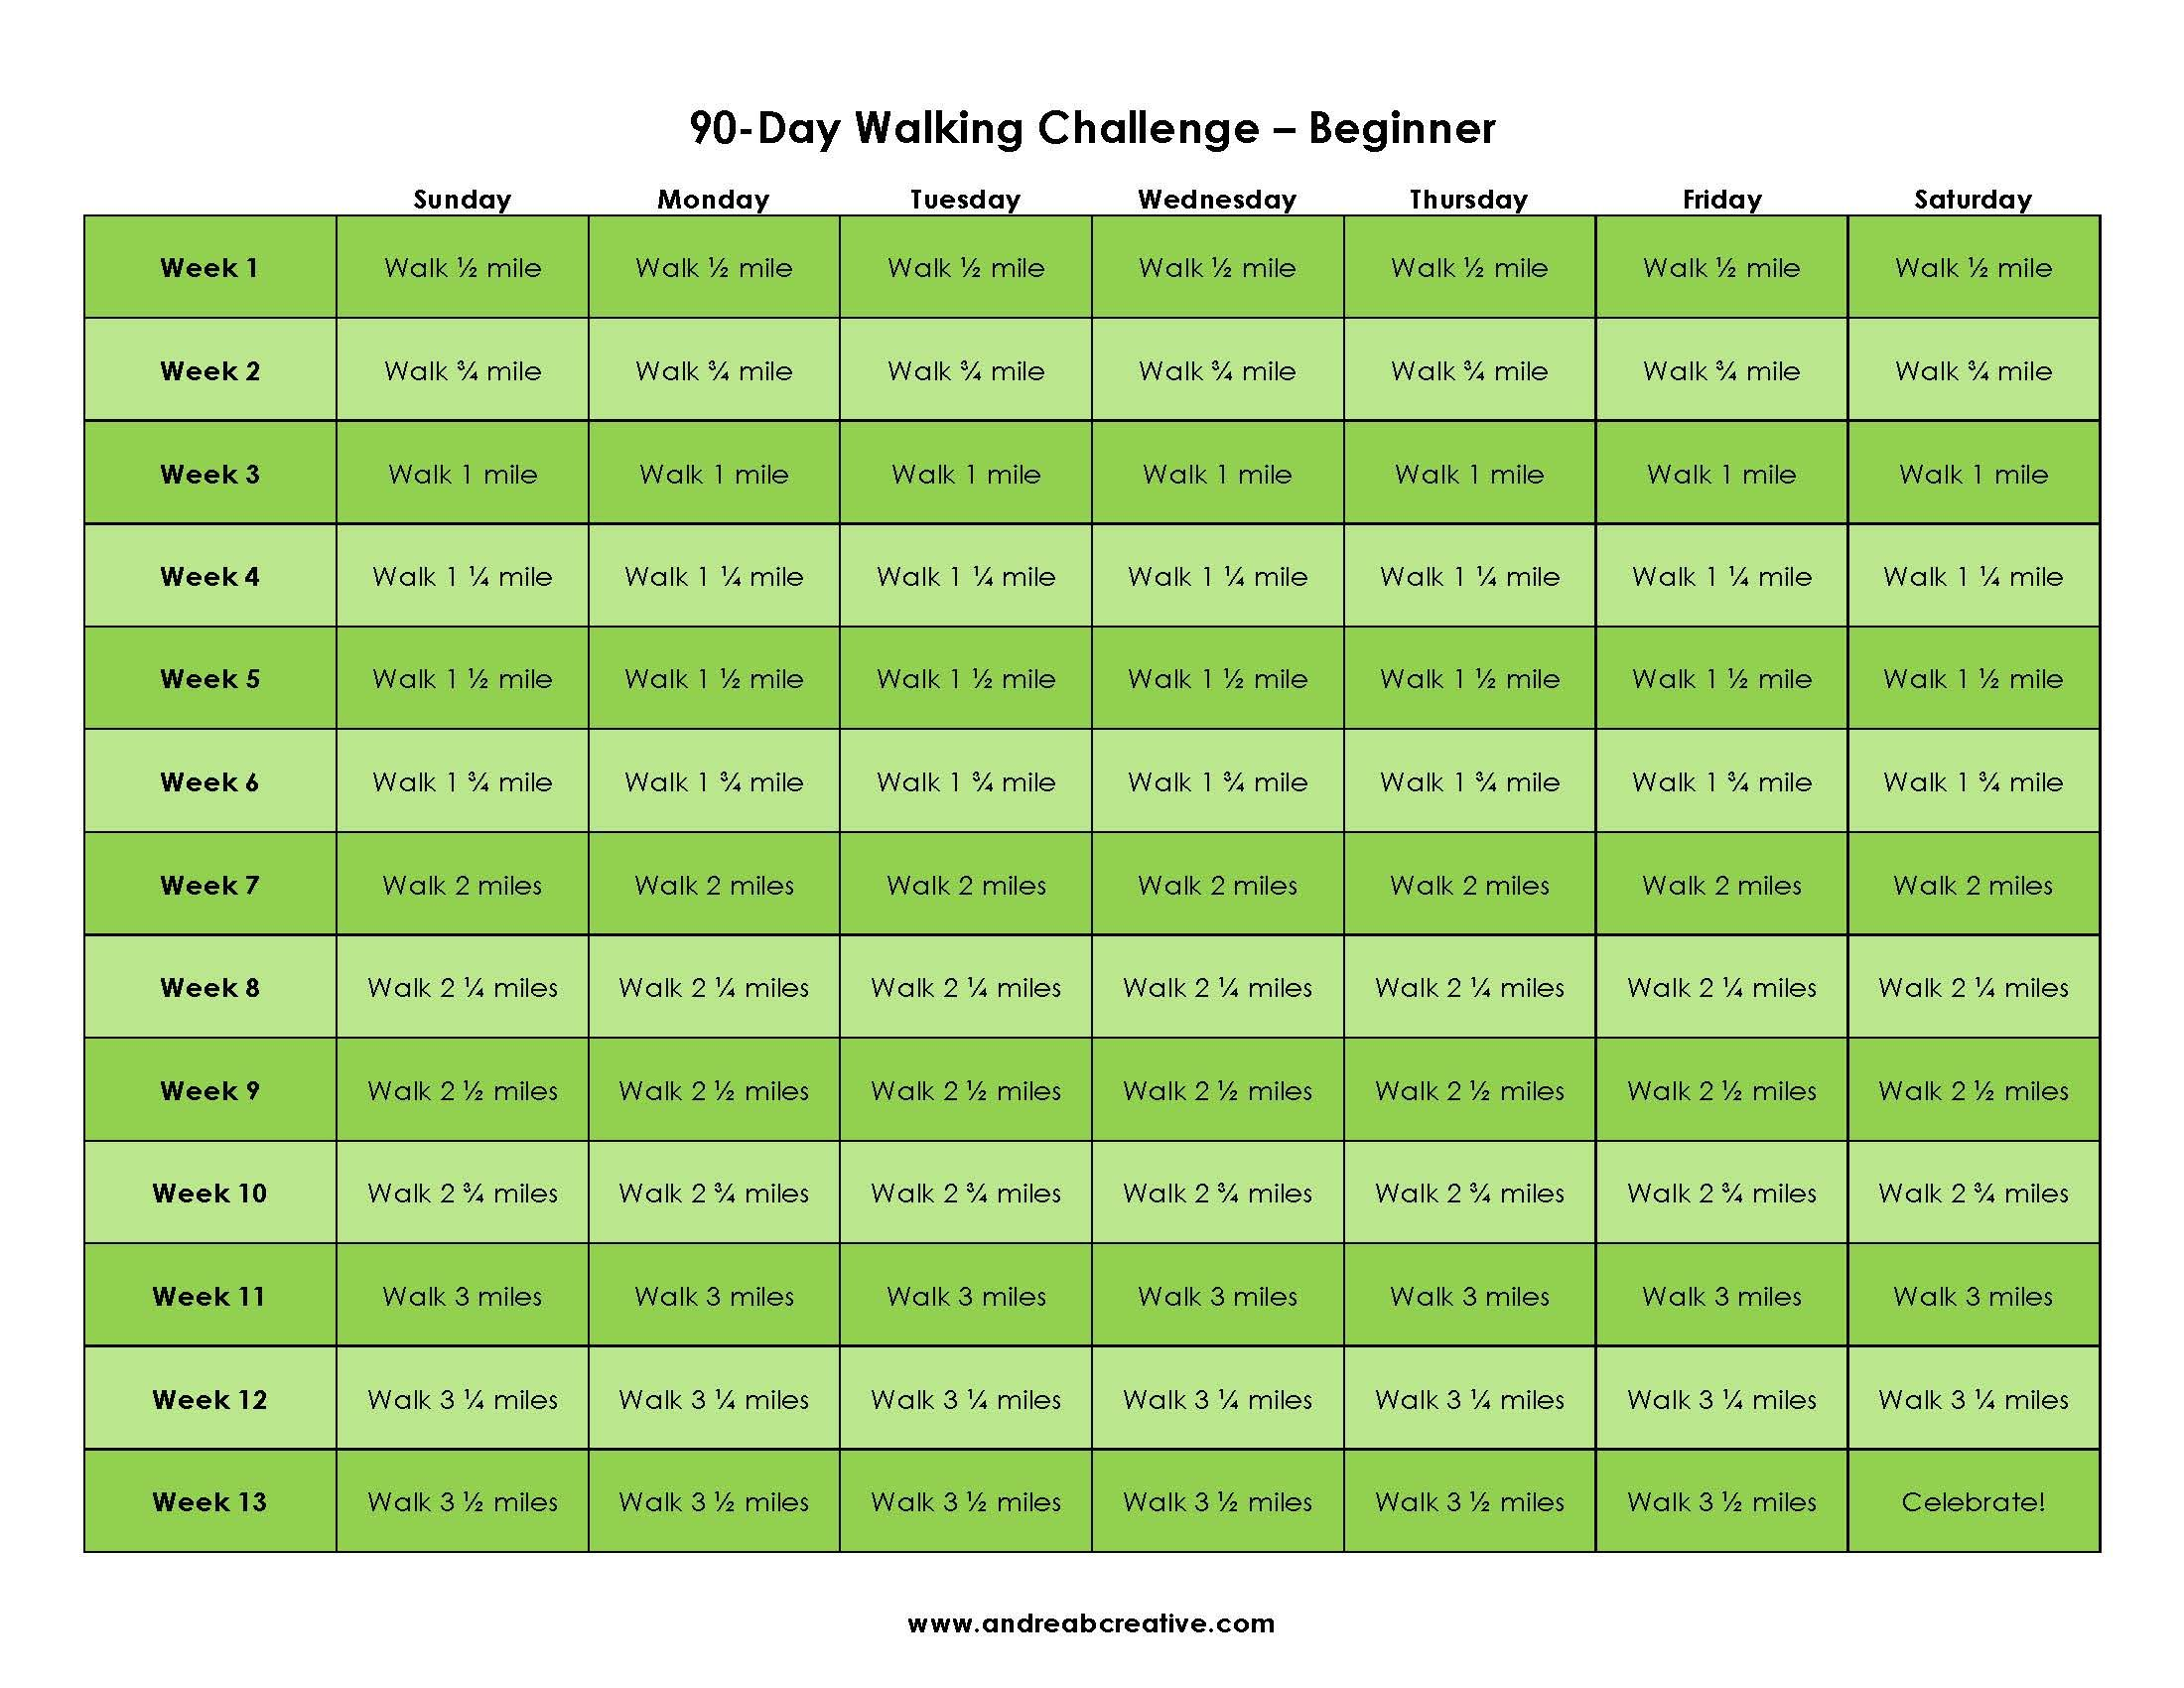 Beginner 90 Day Walking Challenge Guide Go From Couch To 5k In A